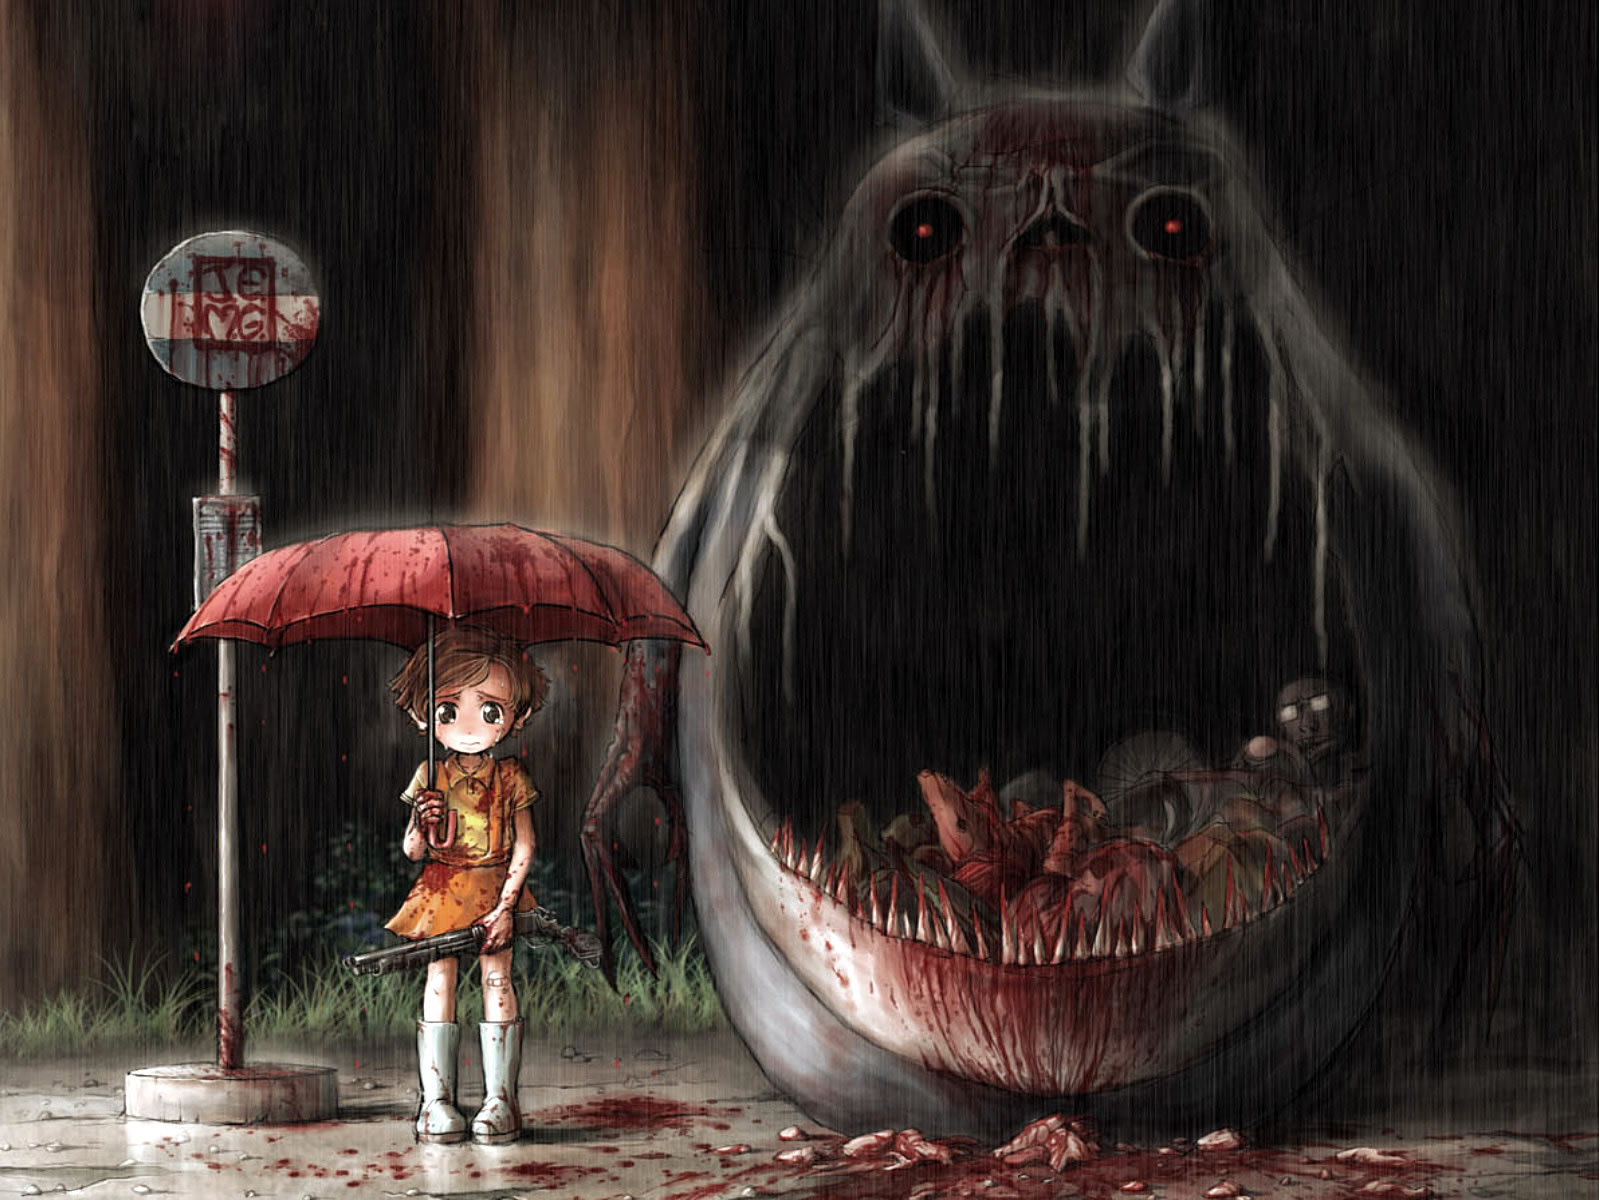 Waiting At The Bus Stop With A Big Monster